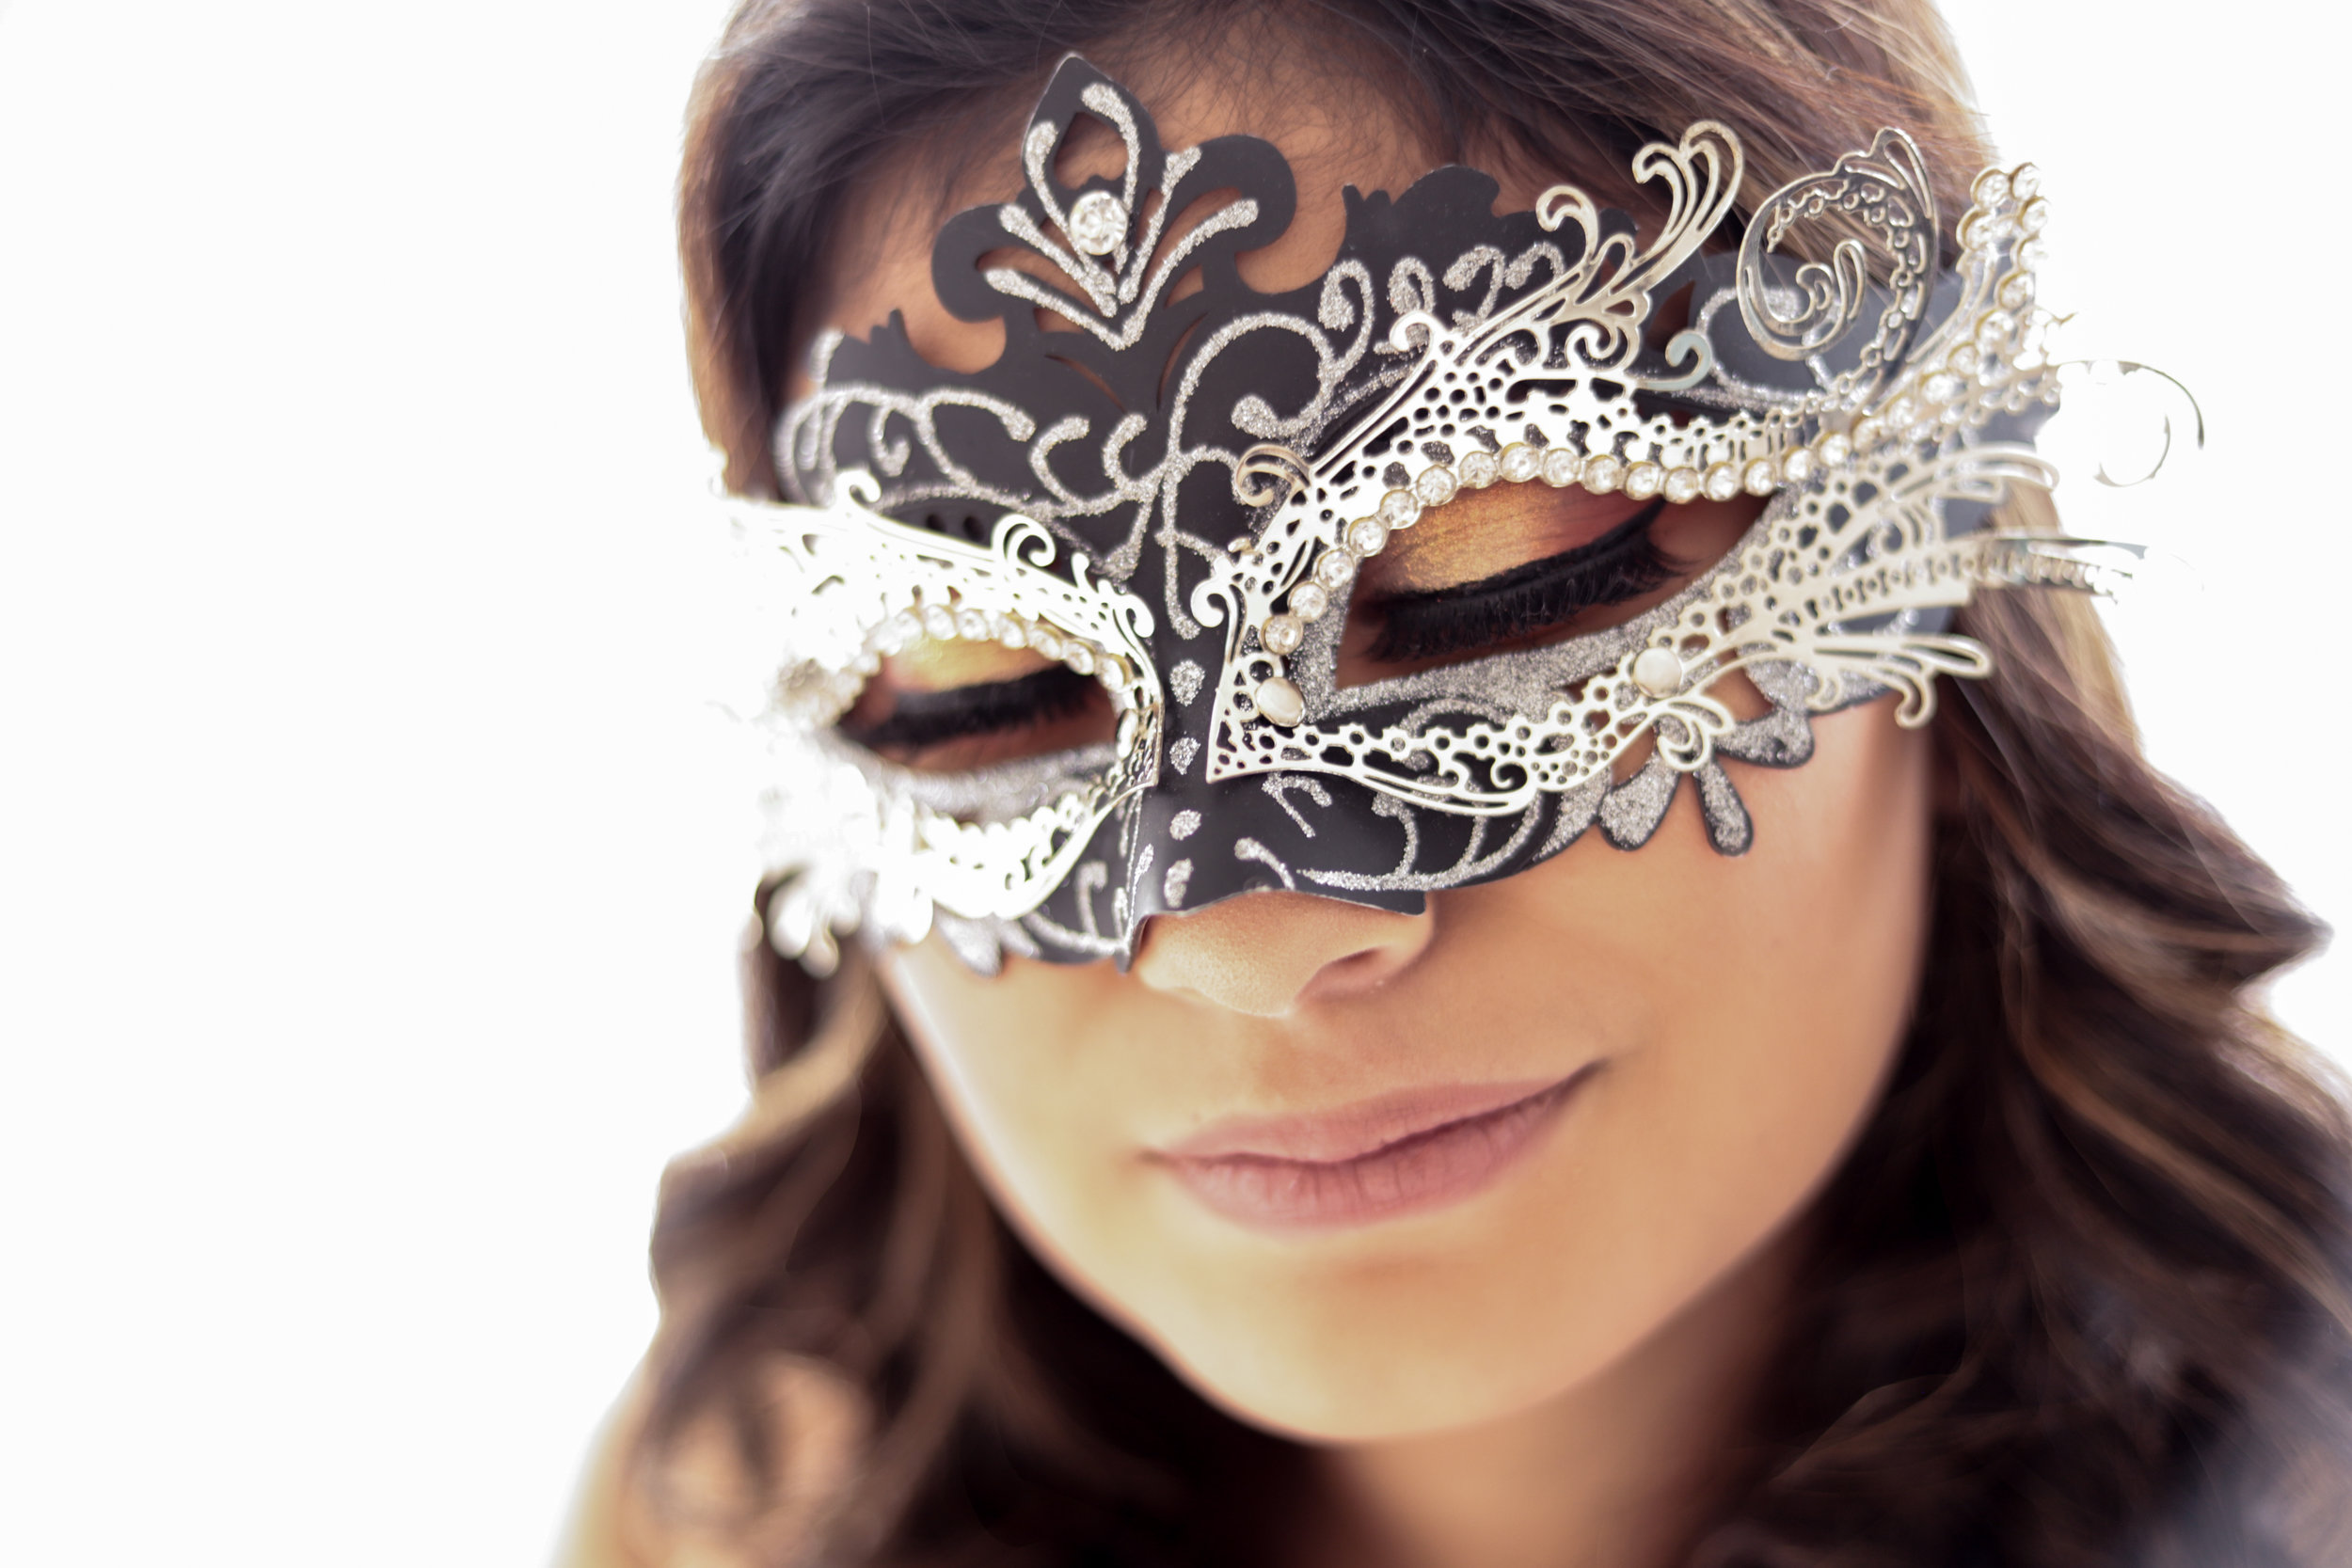 Woman in black and silver mardi gras mask with eyes closed